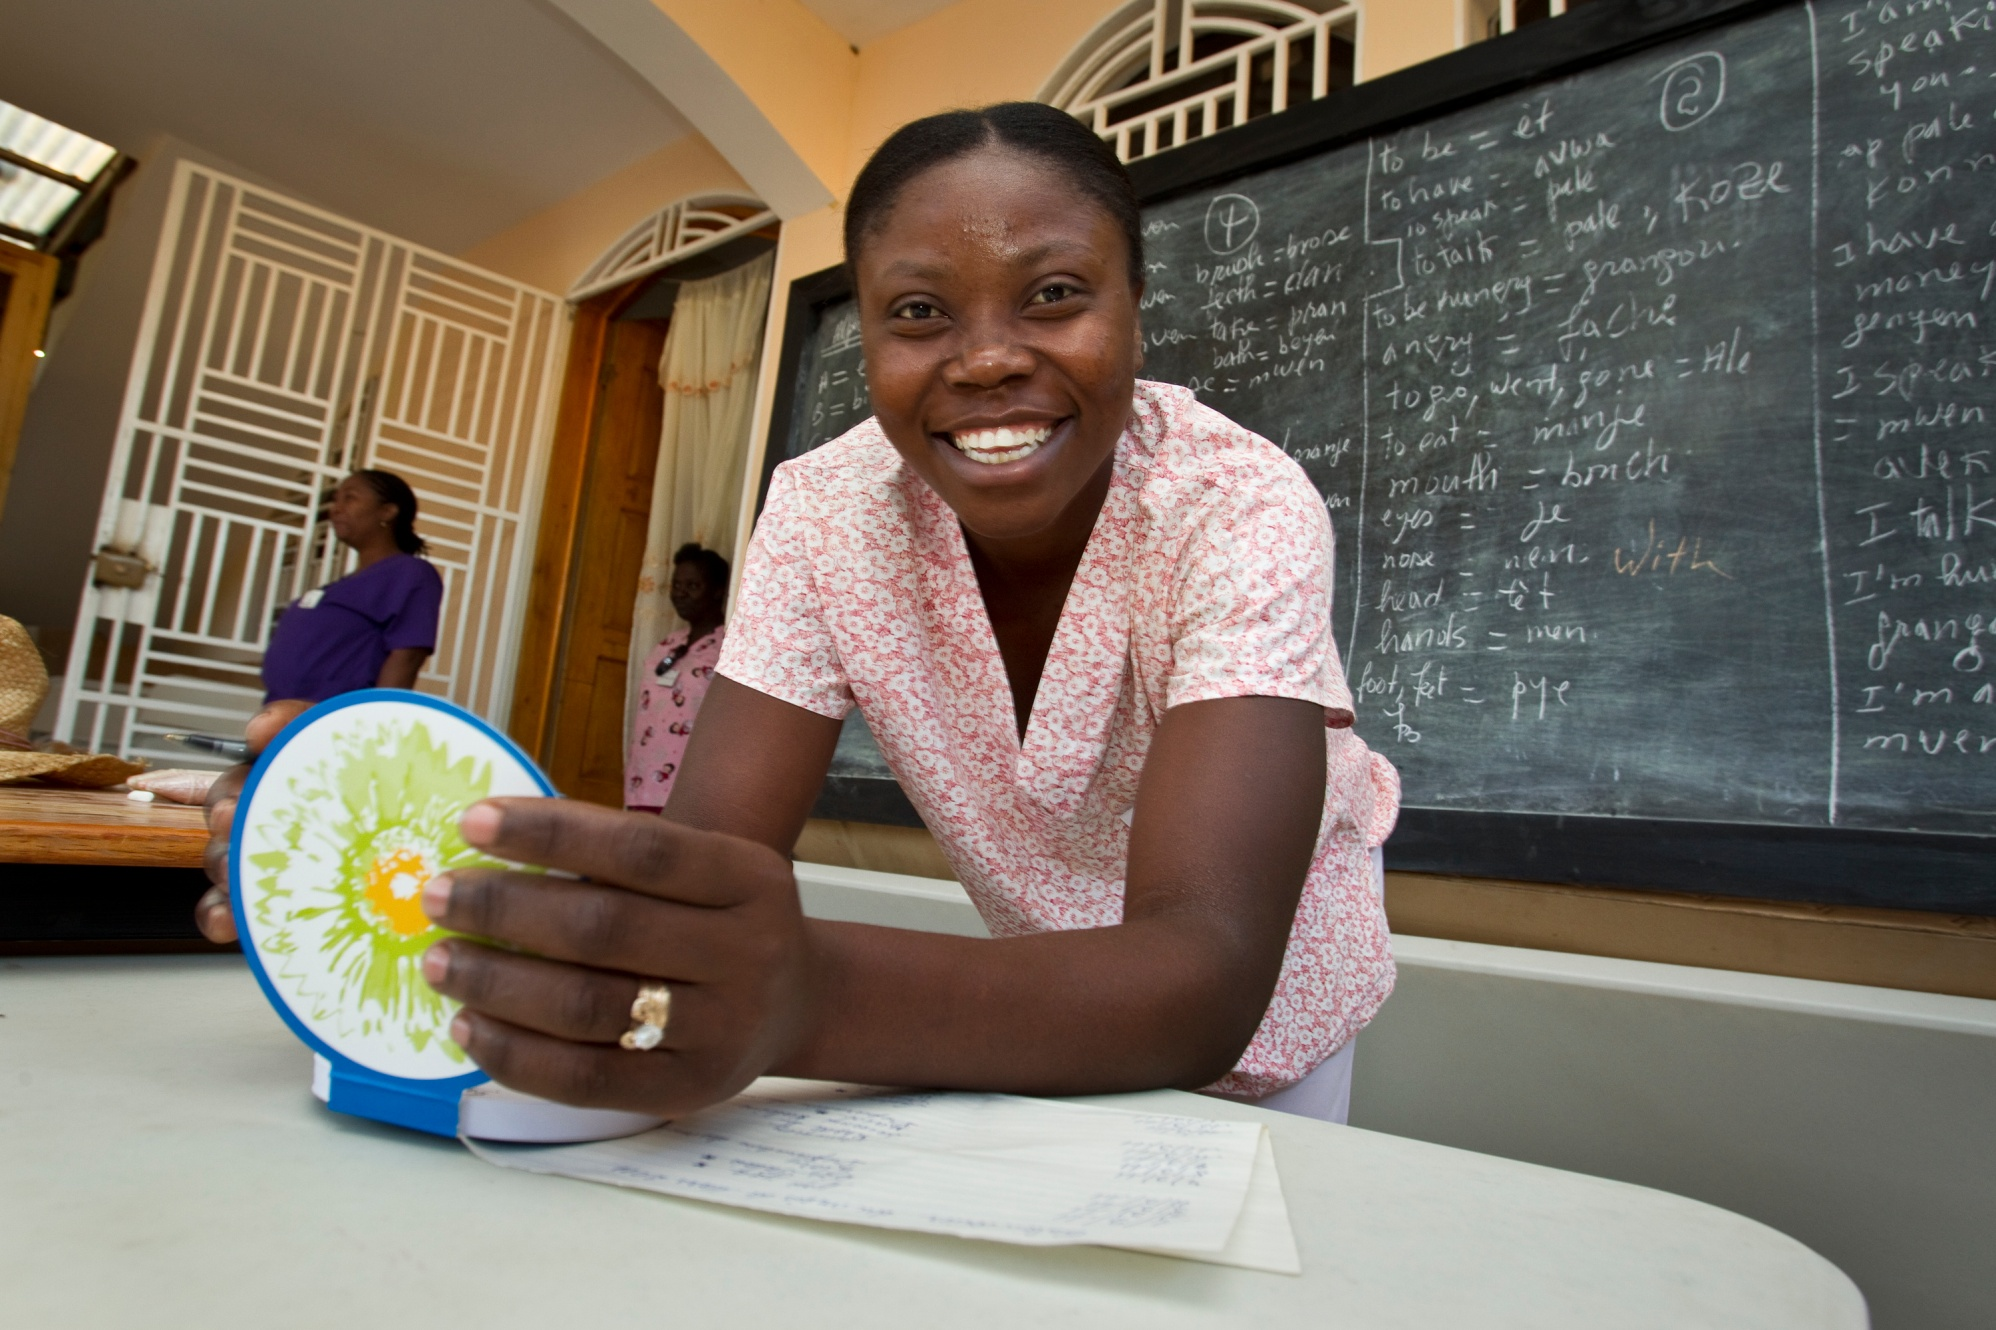 Marie-Ange Esaie, a volunteer midwife with Midwives for Haiti, prepares for a prenatal clinic in Darlegrand, east of Hinche, Haiti. An off-road vehicle was donated to Midwives for Haiti to allow it to reach rural areas like Darlegrand. Customizing and delivering it cost more than $70,000. The project was funded by the Bon Secours Health System, The Rotary Foundation's Haiti Earthquake Relief Fund, the Interact Club of Hermitage High School, Virginia, USA, and the Rotary Clubs of Bon Air, Henrico North, and Western Henrico County, all in Virginia, USA.